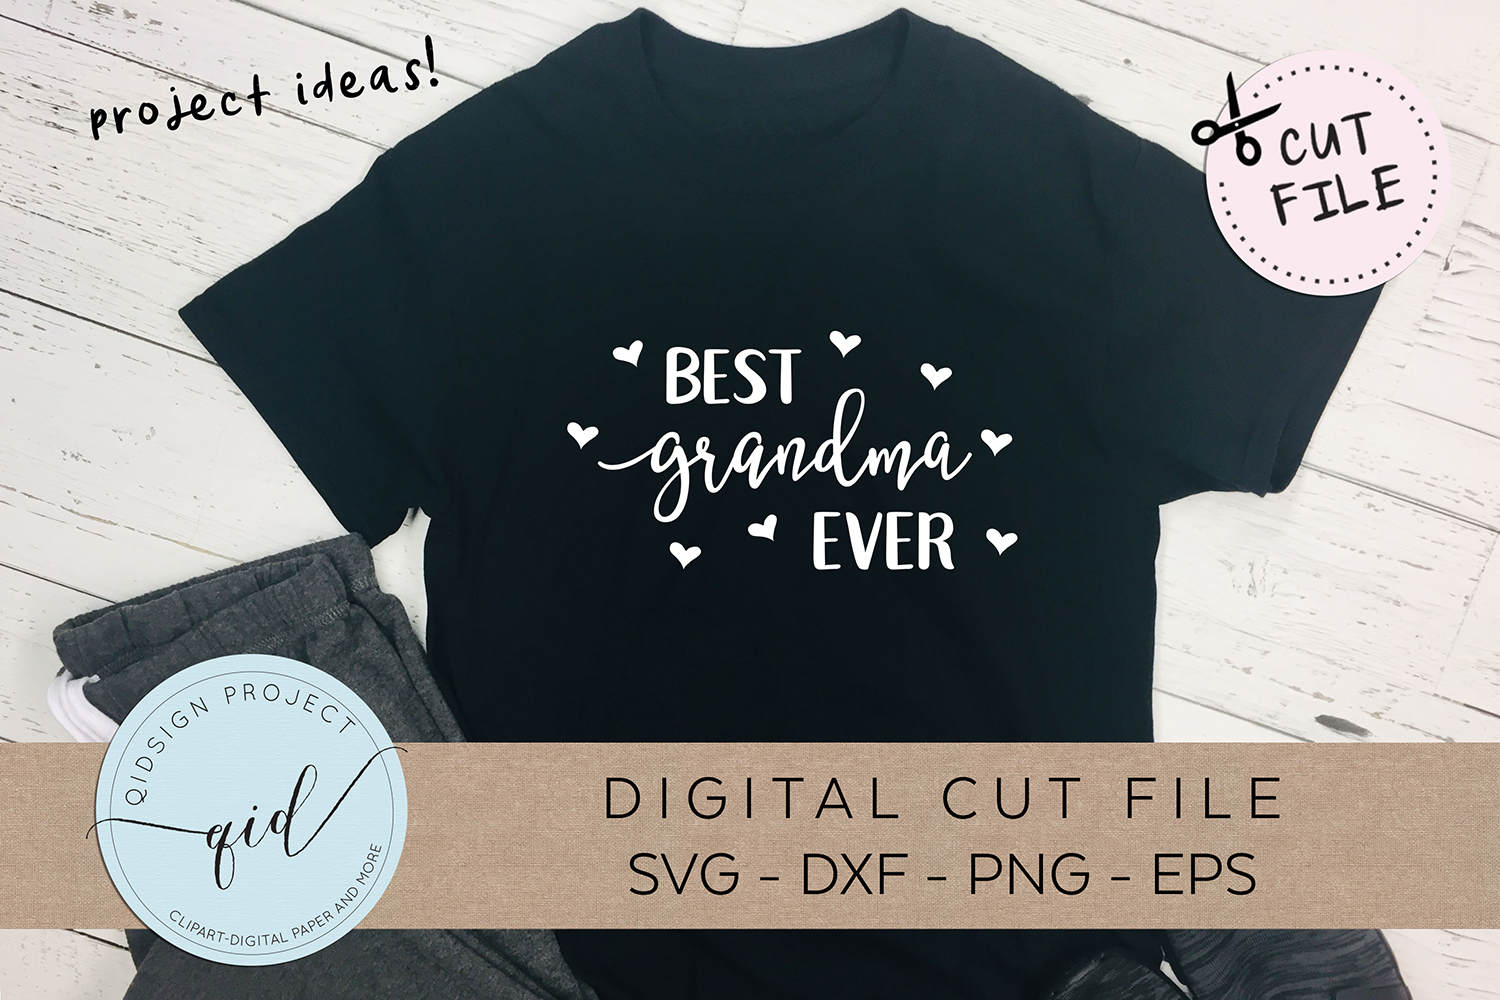 Best Grandma Ever SVG DXF PNG EPS example image 1